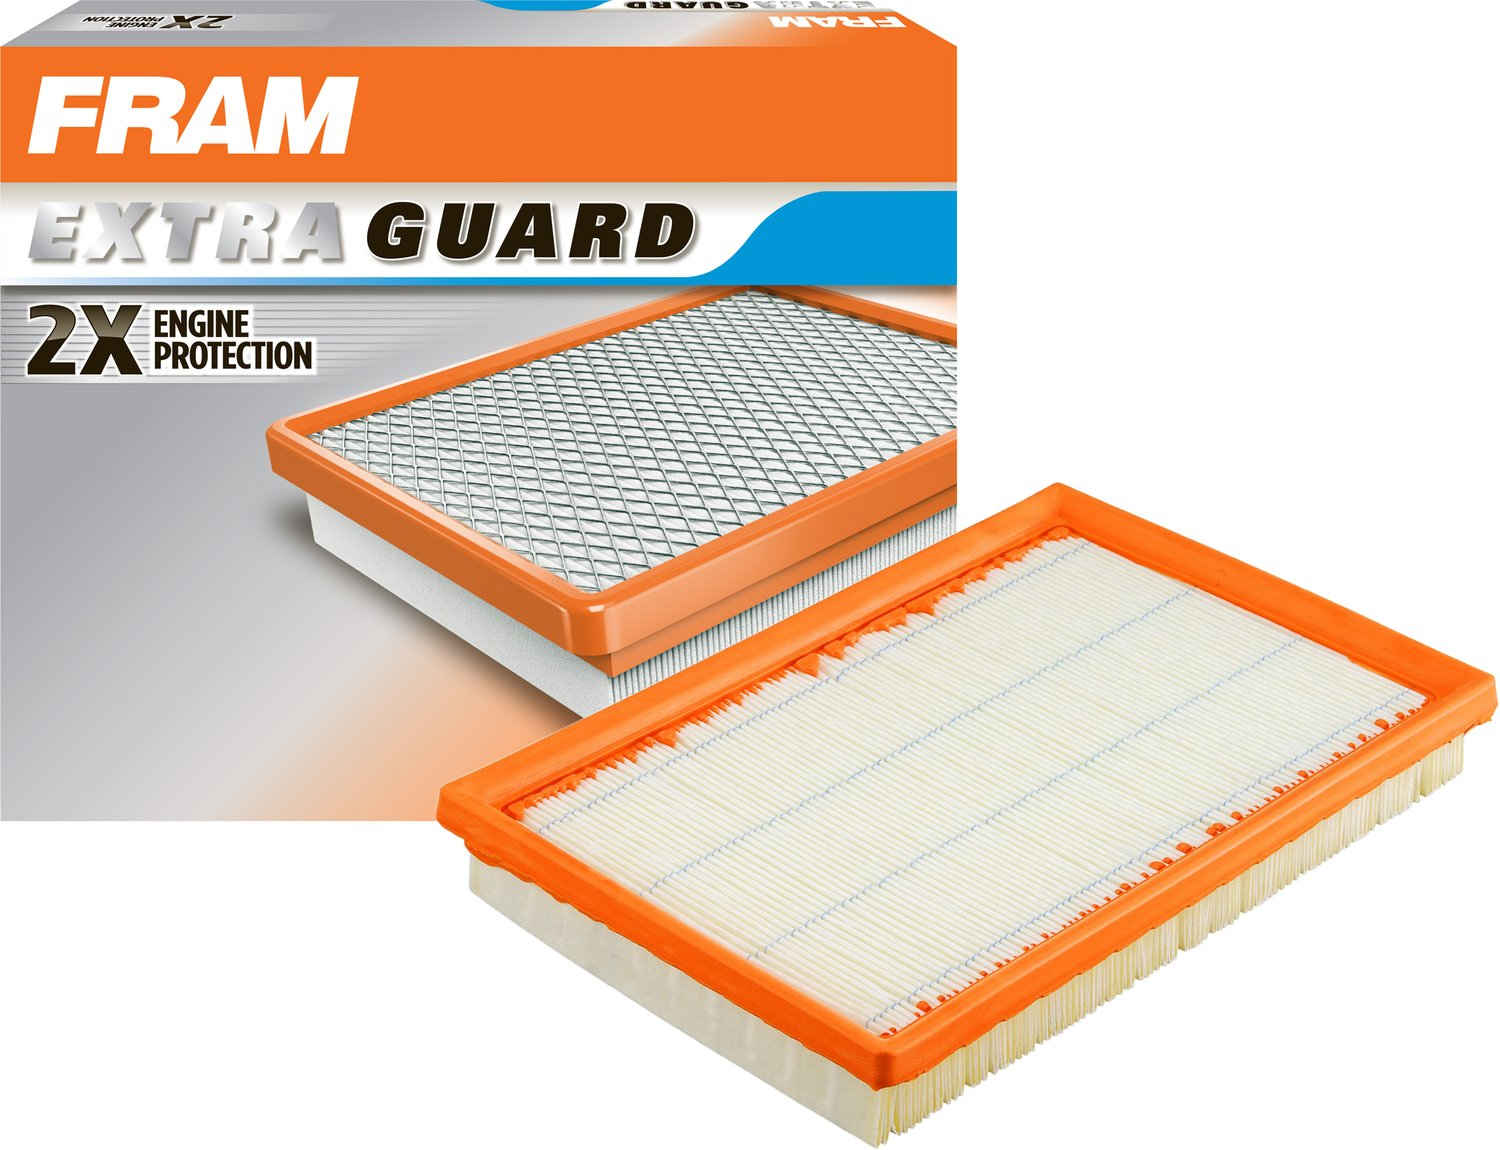 FRAM CA10677 Extra Guard Panel Air Filter